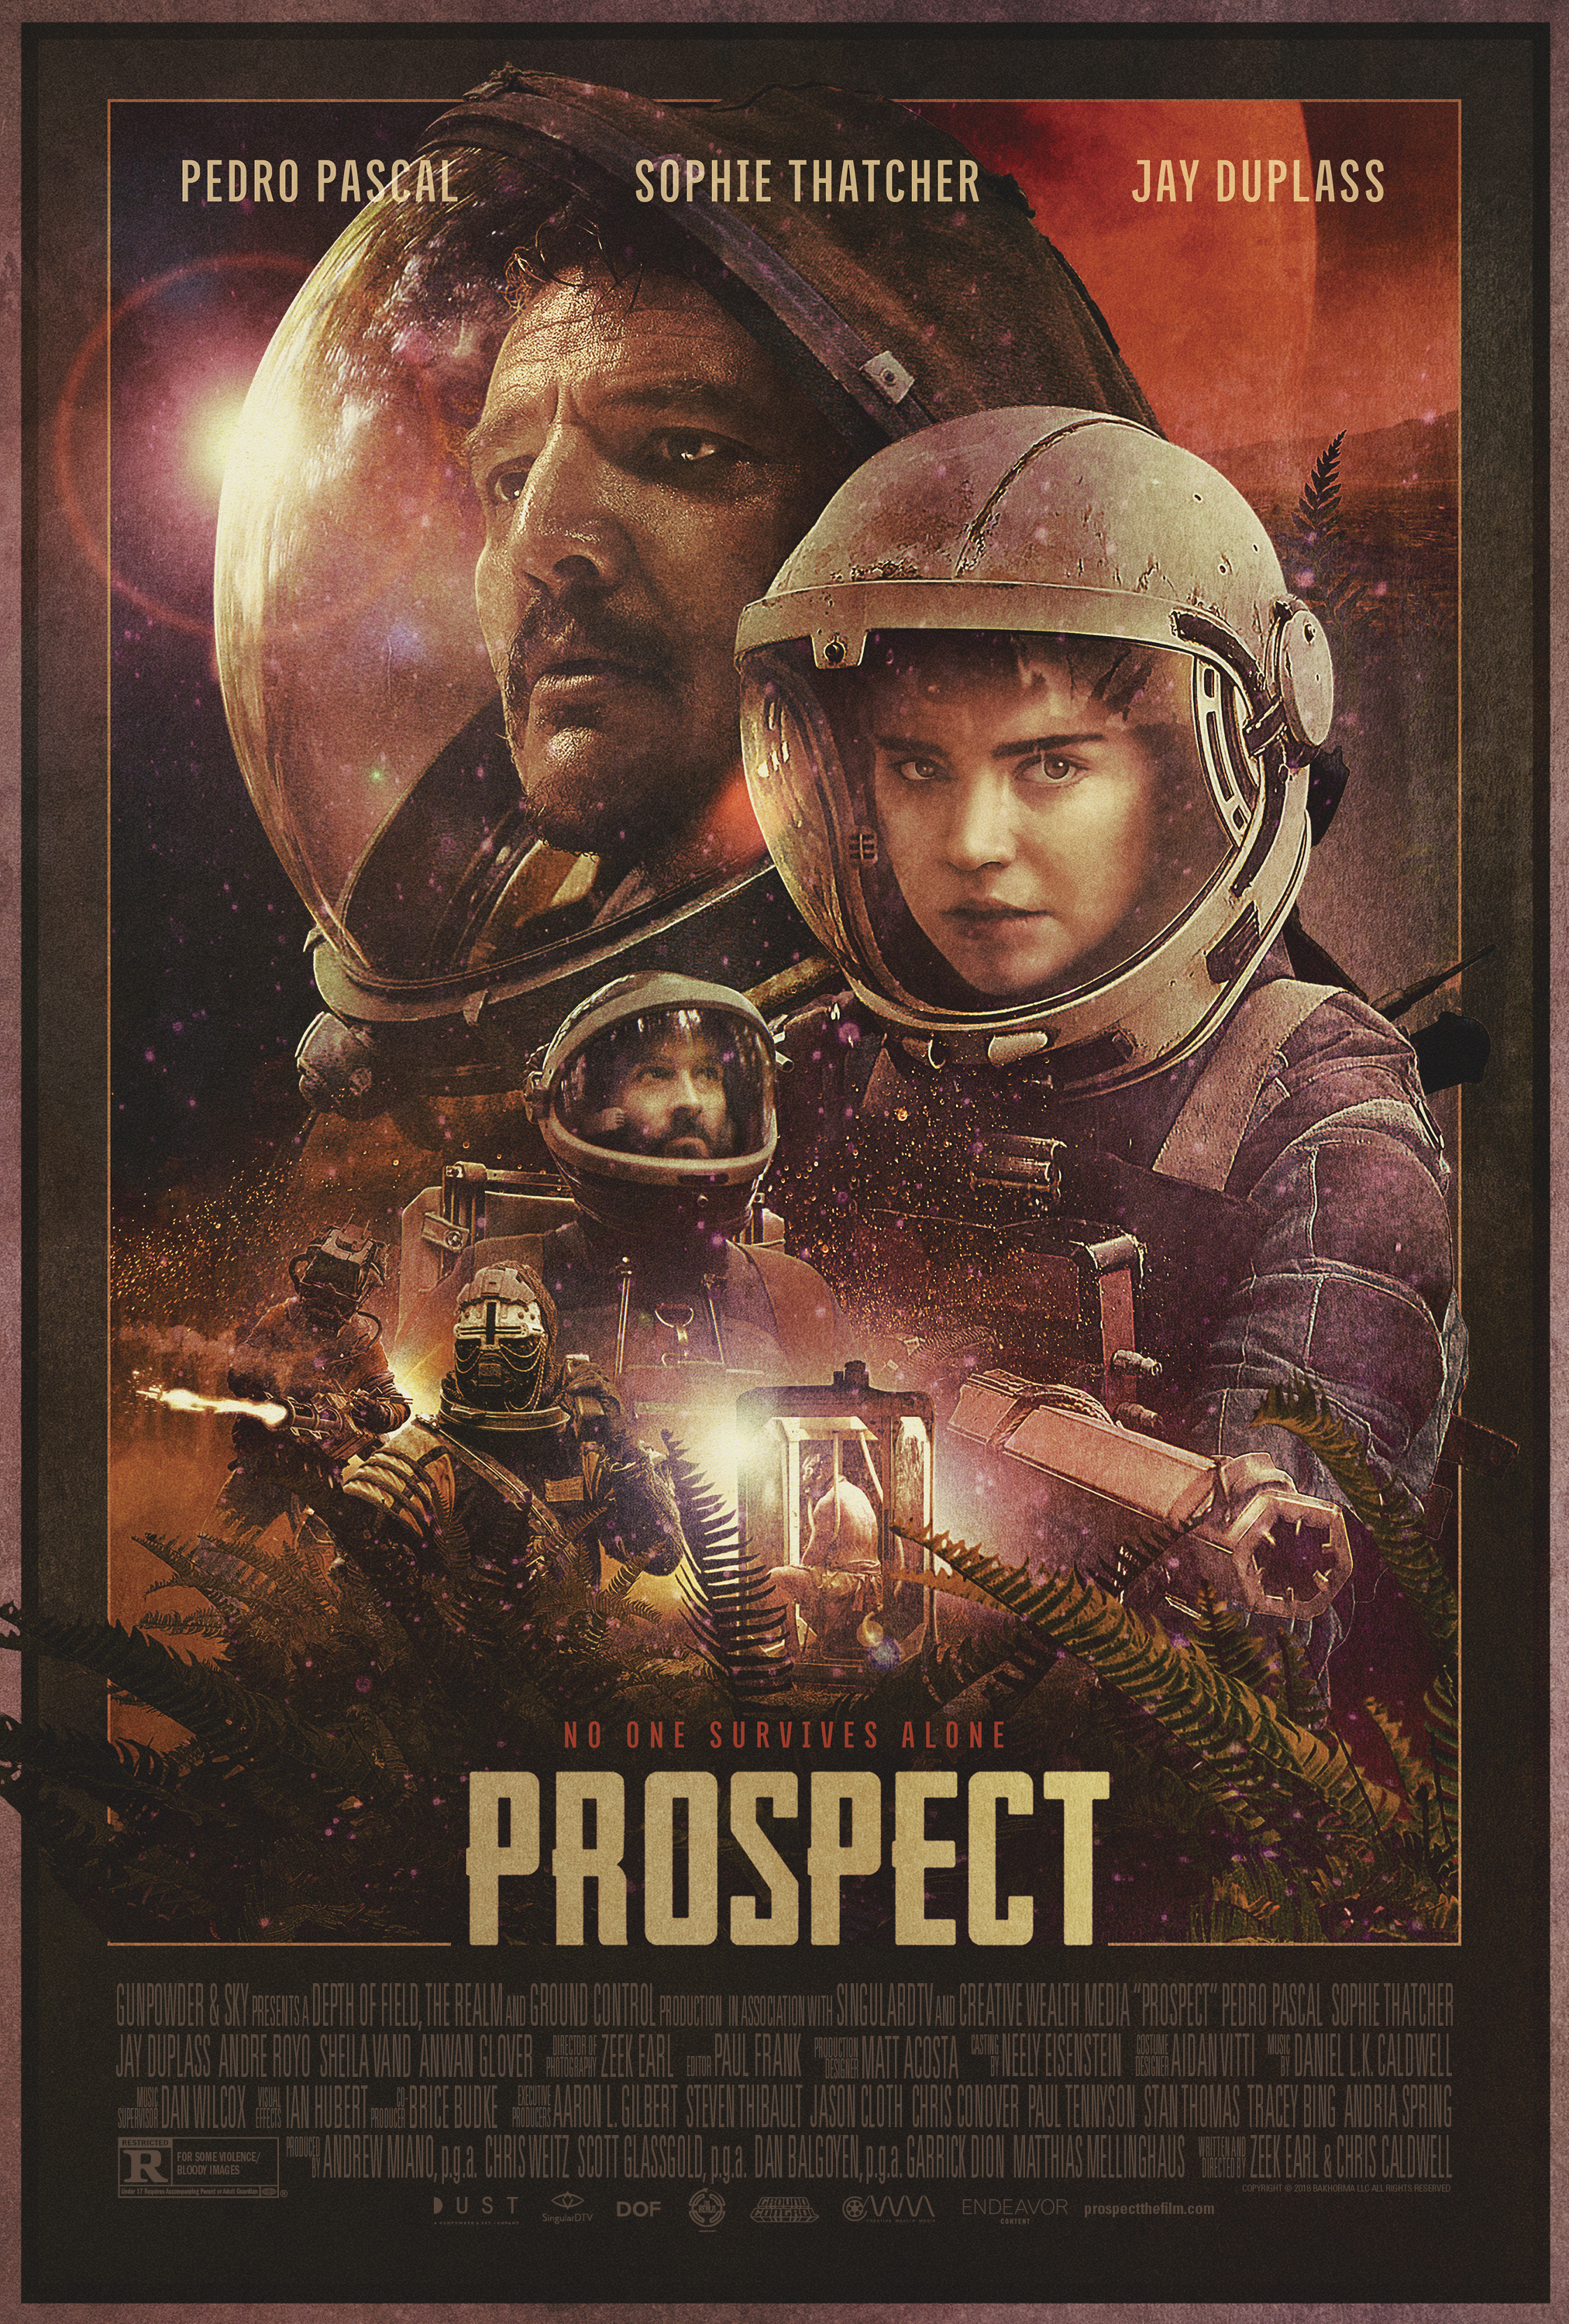 The film poster showing Pedro Pascal, Sophie Thatcher and Jay Duplass wearing spacesuits.